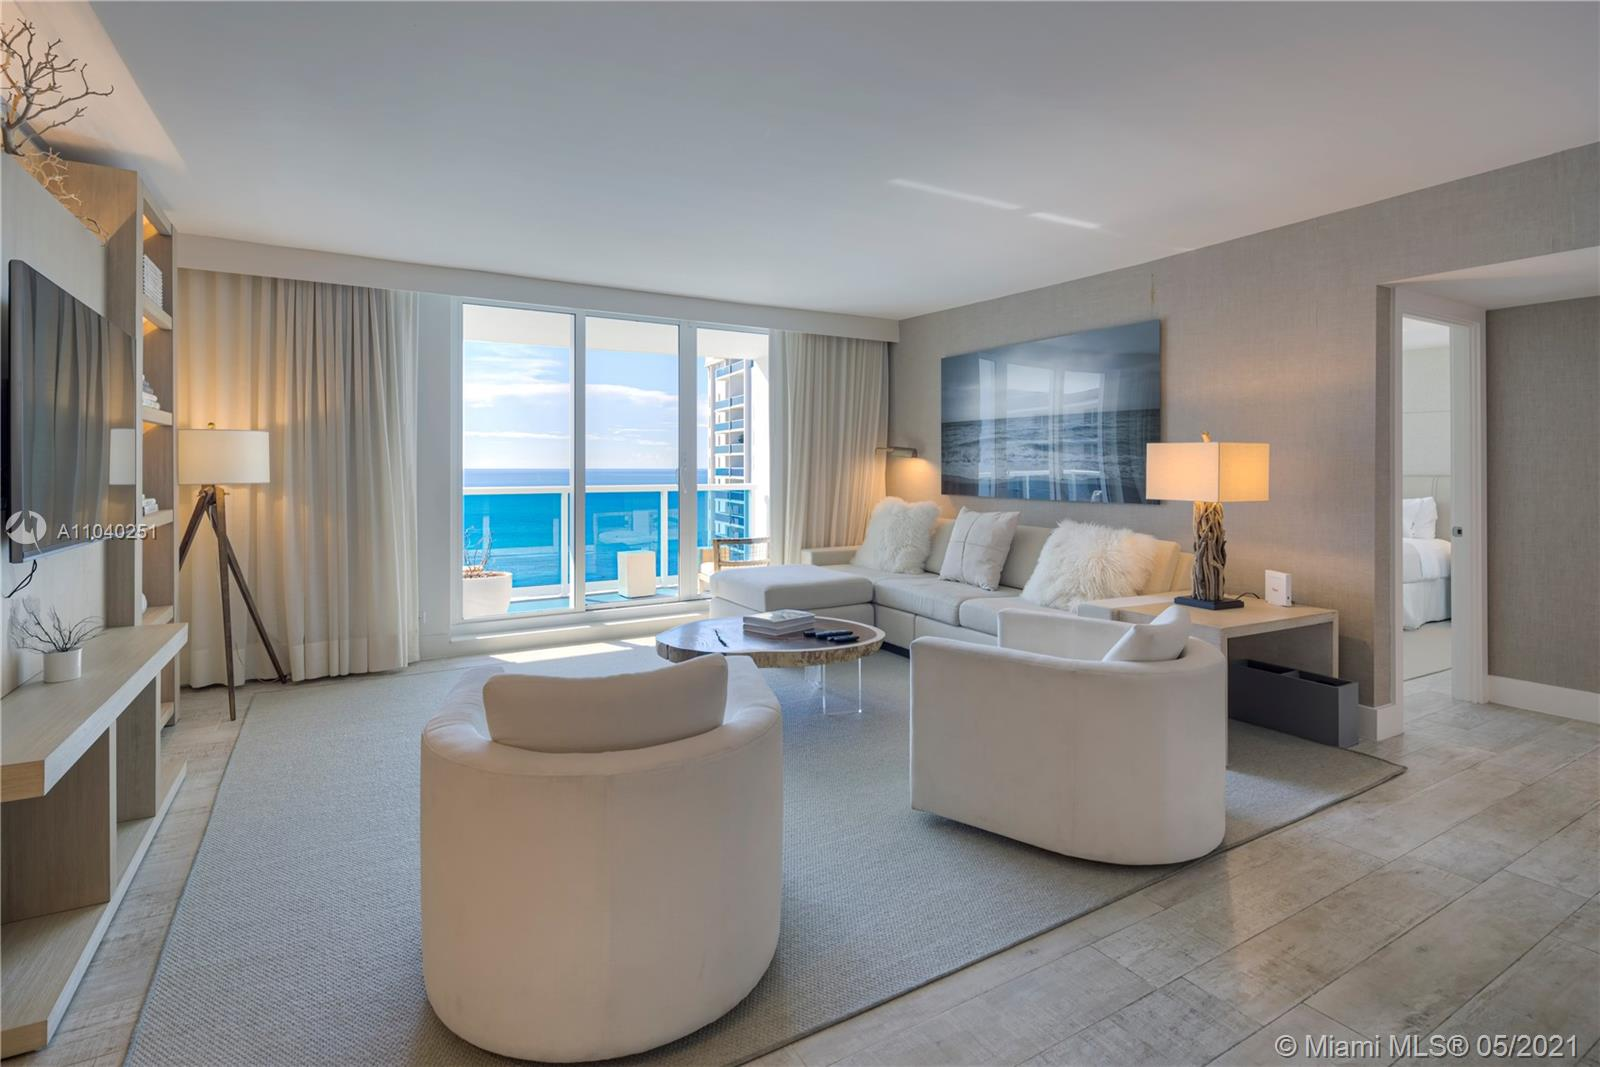 Enjoy direct ocean views from this 3 bedroom + den luxurious 1,817 Sq. Ft. condo. Comes with the custom hotel furniture package designed by acclaimed Brazilian decorator Debra Aguiar. Each room has smart TV's Guests have access to a variety of white glove services including a private fully staffed residence lobby, valet attendants, personal concierge, chauffeured Tesla sedans, the hotels 5 star luxurious and chic eco-conscious amenities. Rental includes linens and towels, toiletries, dishes, pots and pans, daily coffee and tea, full use of all hotel amenities to include 4 pools 4 restaurants, 3 bars, 14,000 Sq. Ft. spa and hair salon, Soul Cycle, chauffeured Teslas, and much more. Available for daily, weekly, monthly and yearly rentals through Five Star Luxury Travel.